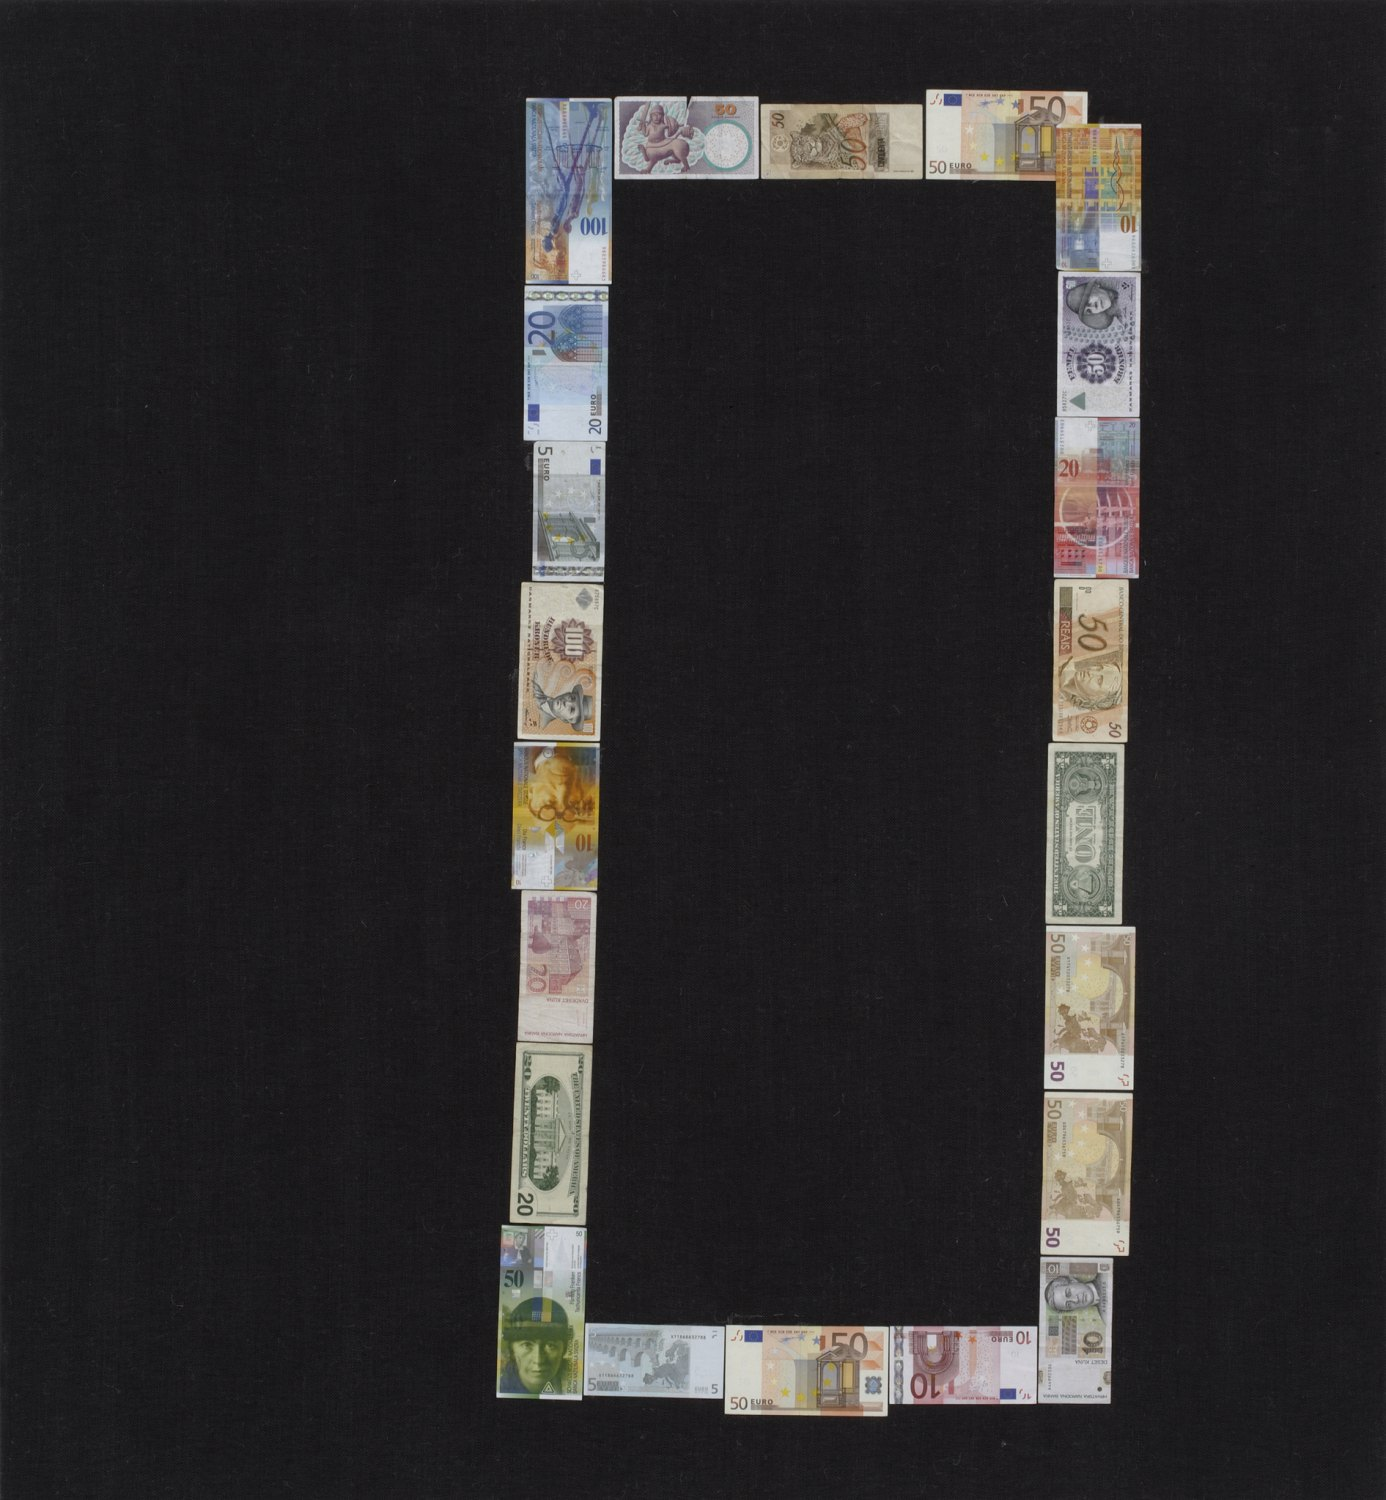 Sergej Jensen Untitled (Binary Zero), 2005 Banknotes on canvas,  130 × 120 cm